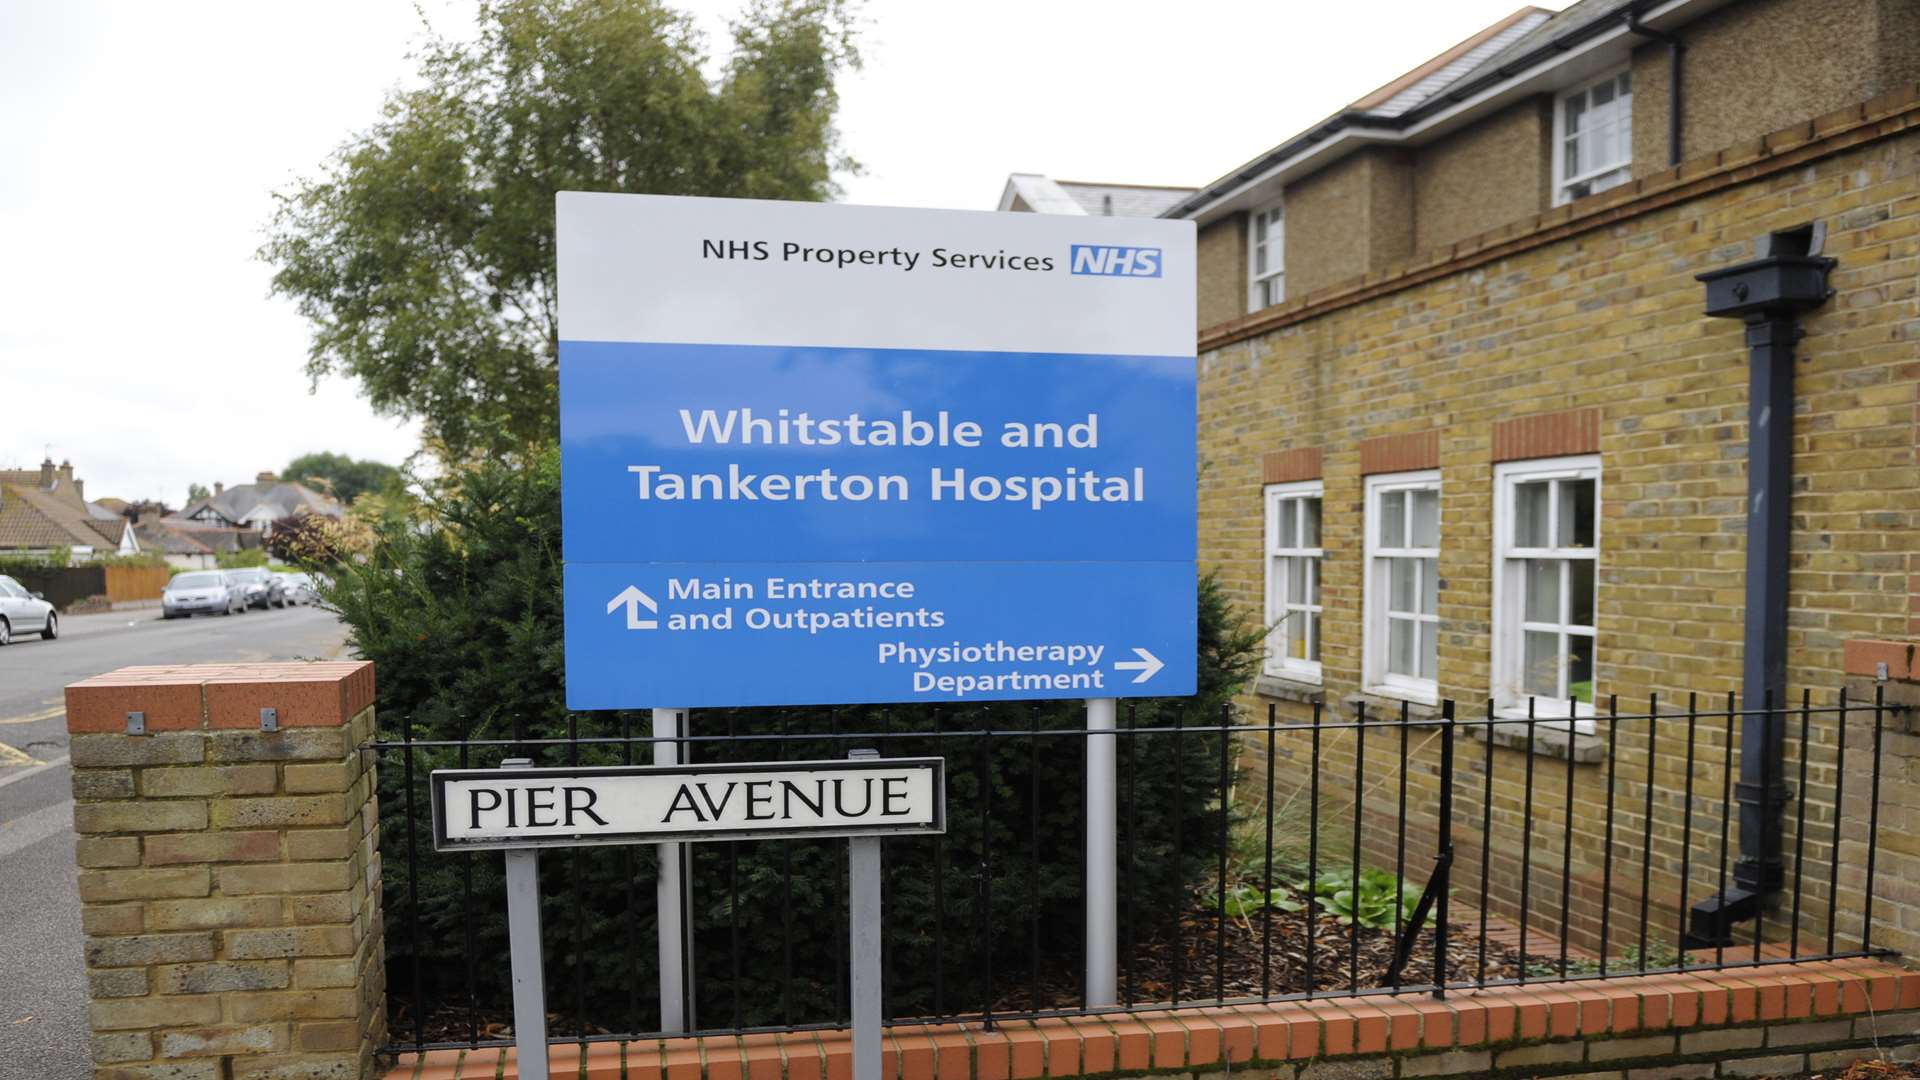 Whitstable and Tankerton Hospital not to be sold off, according to